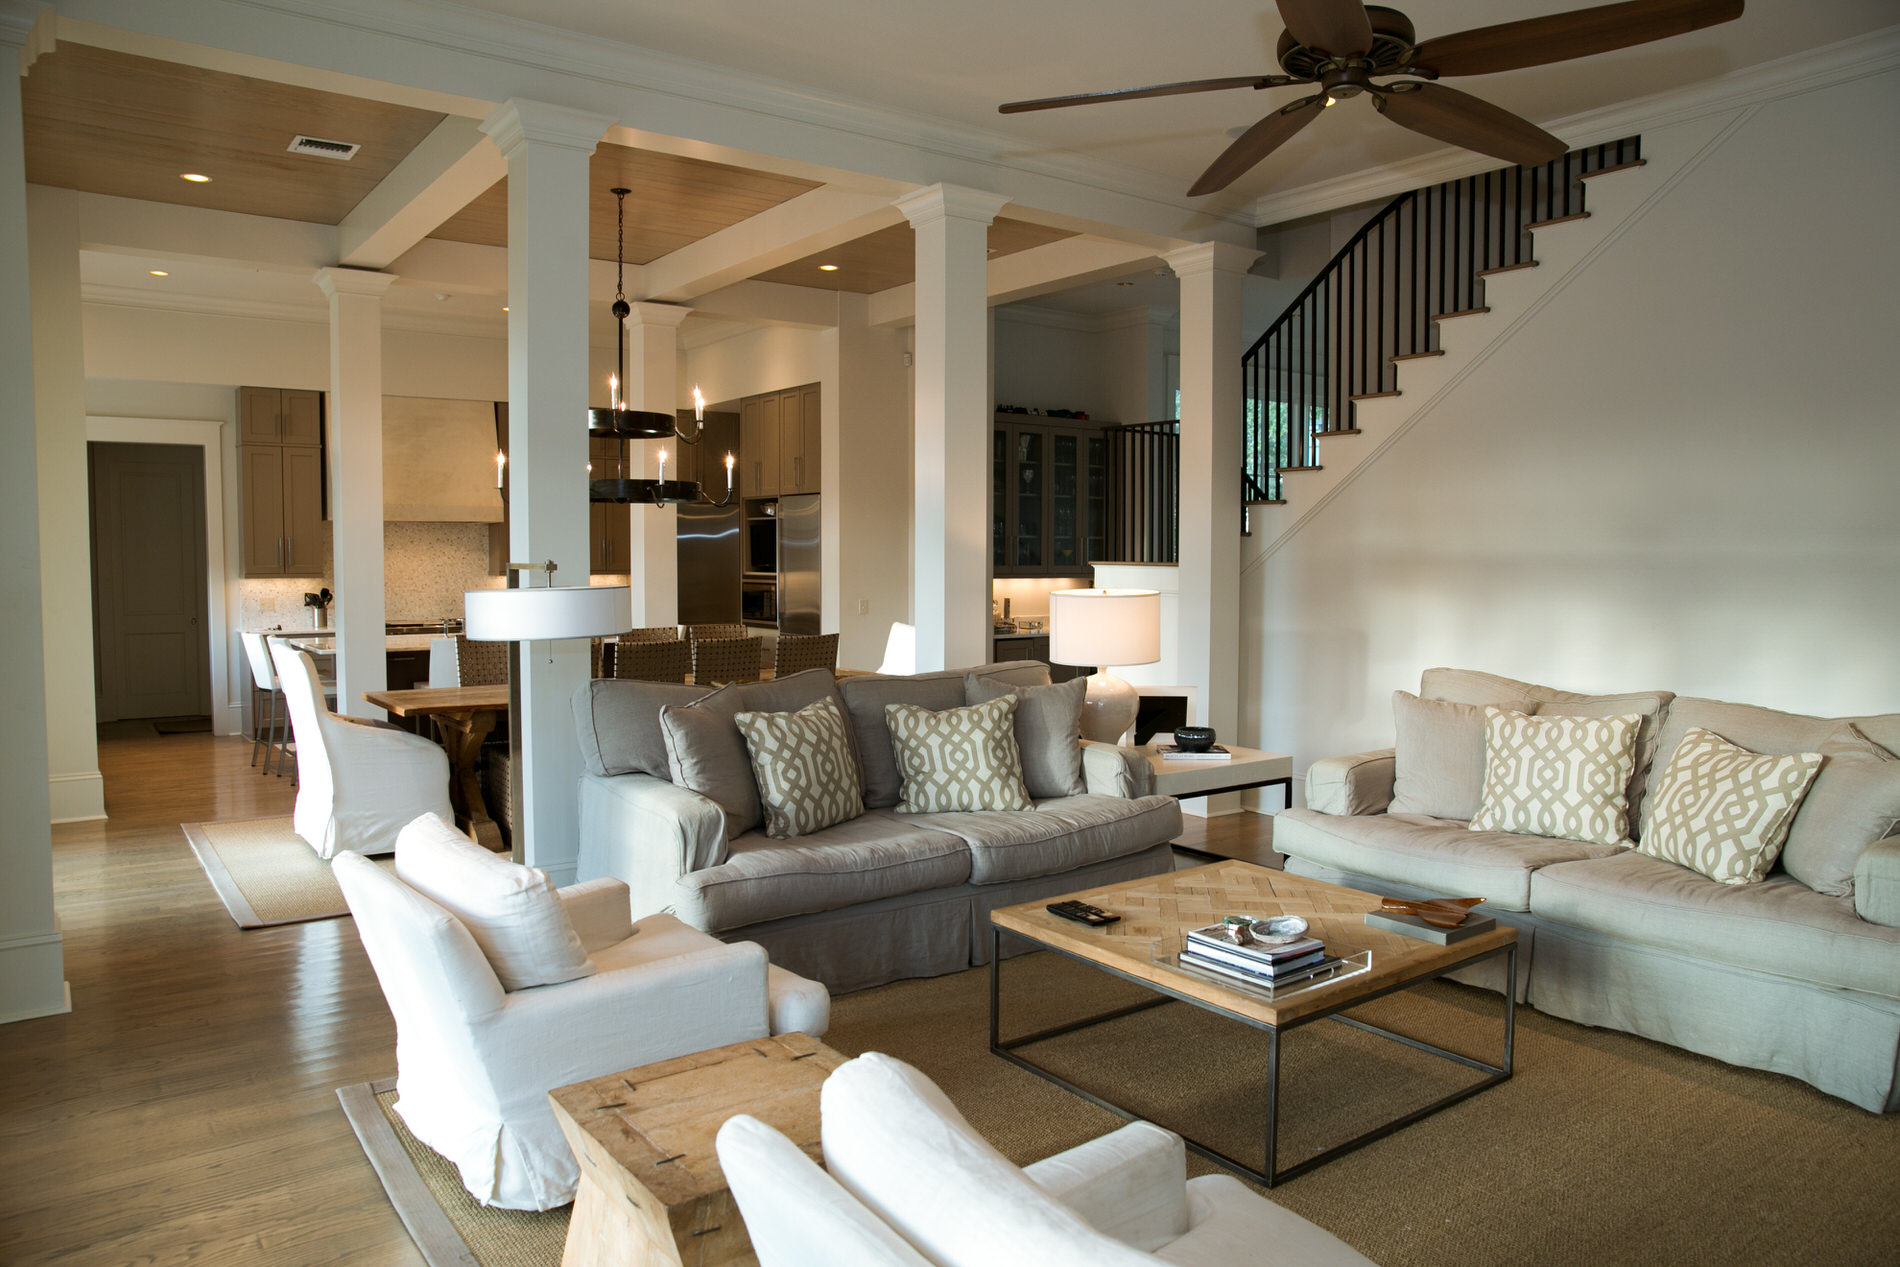 New homes interior design ideas amazing ideas for new for Interior designs new orleans